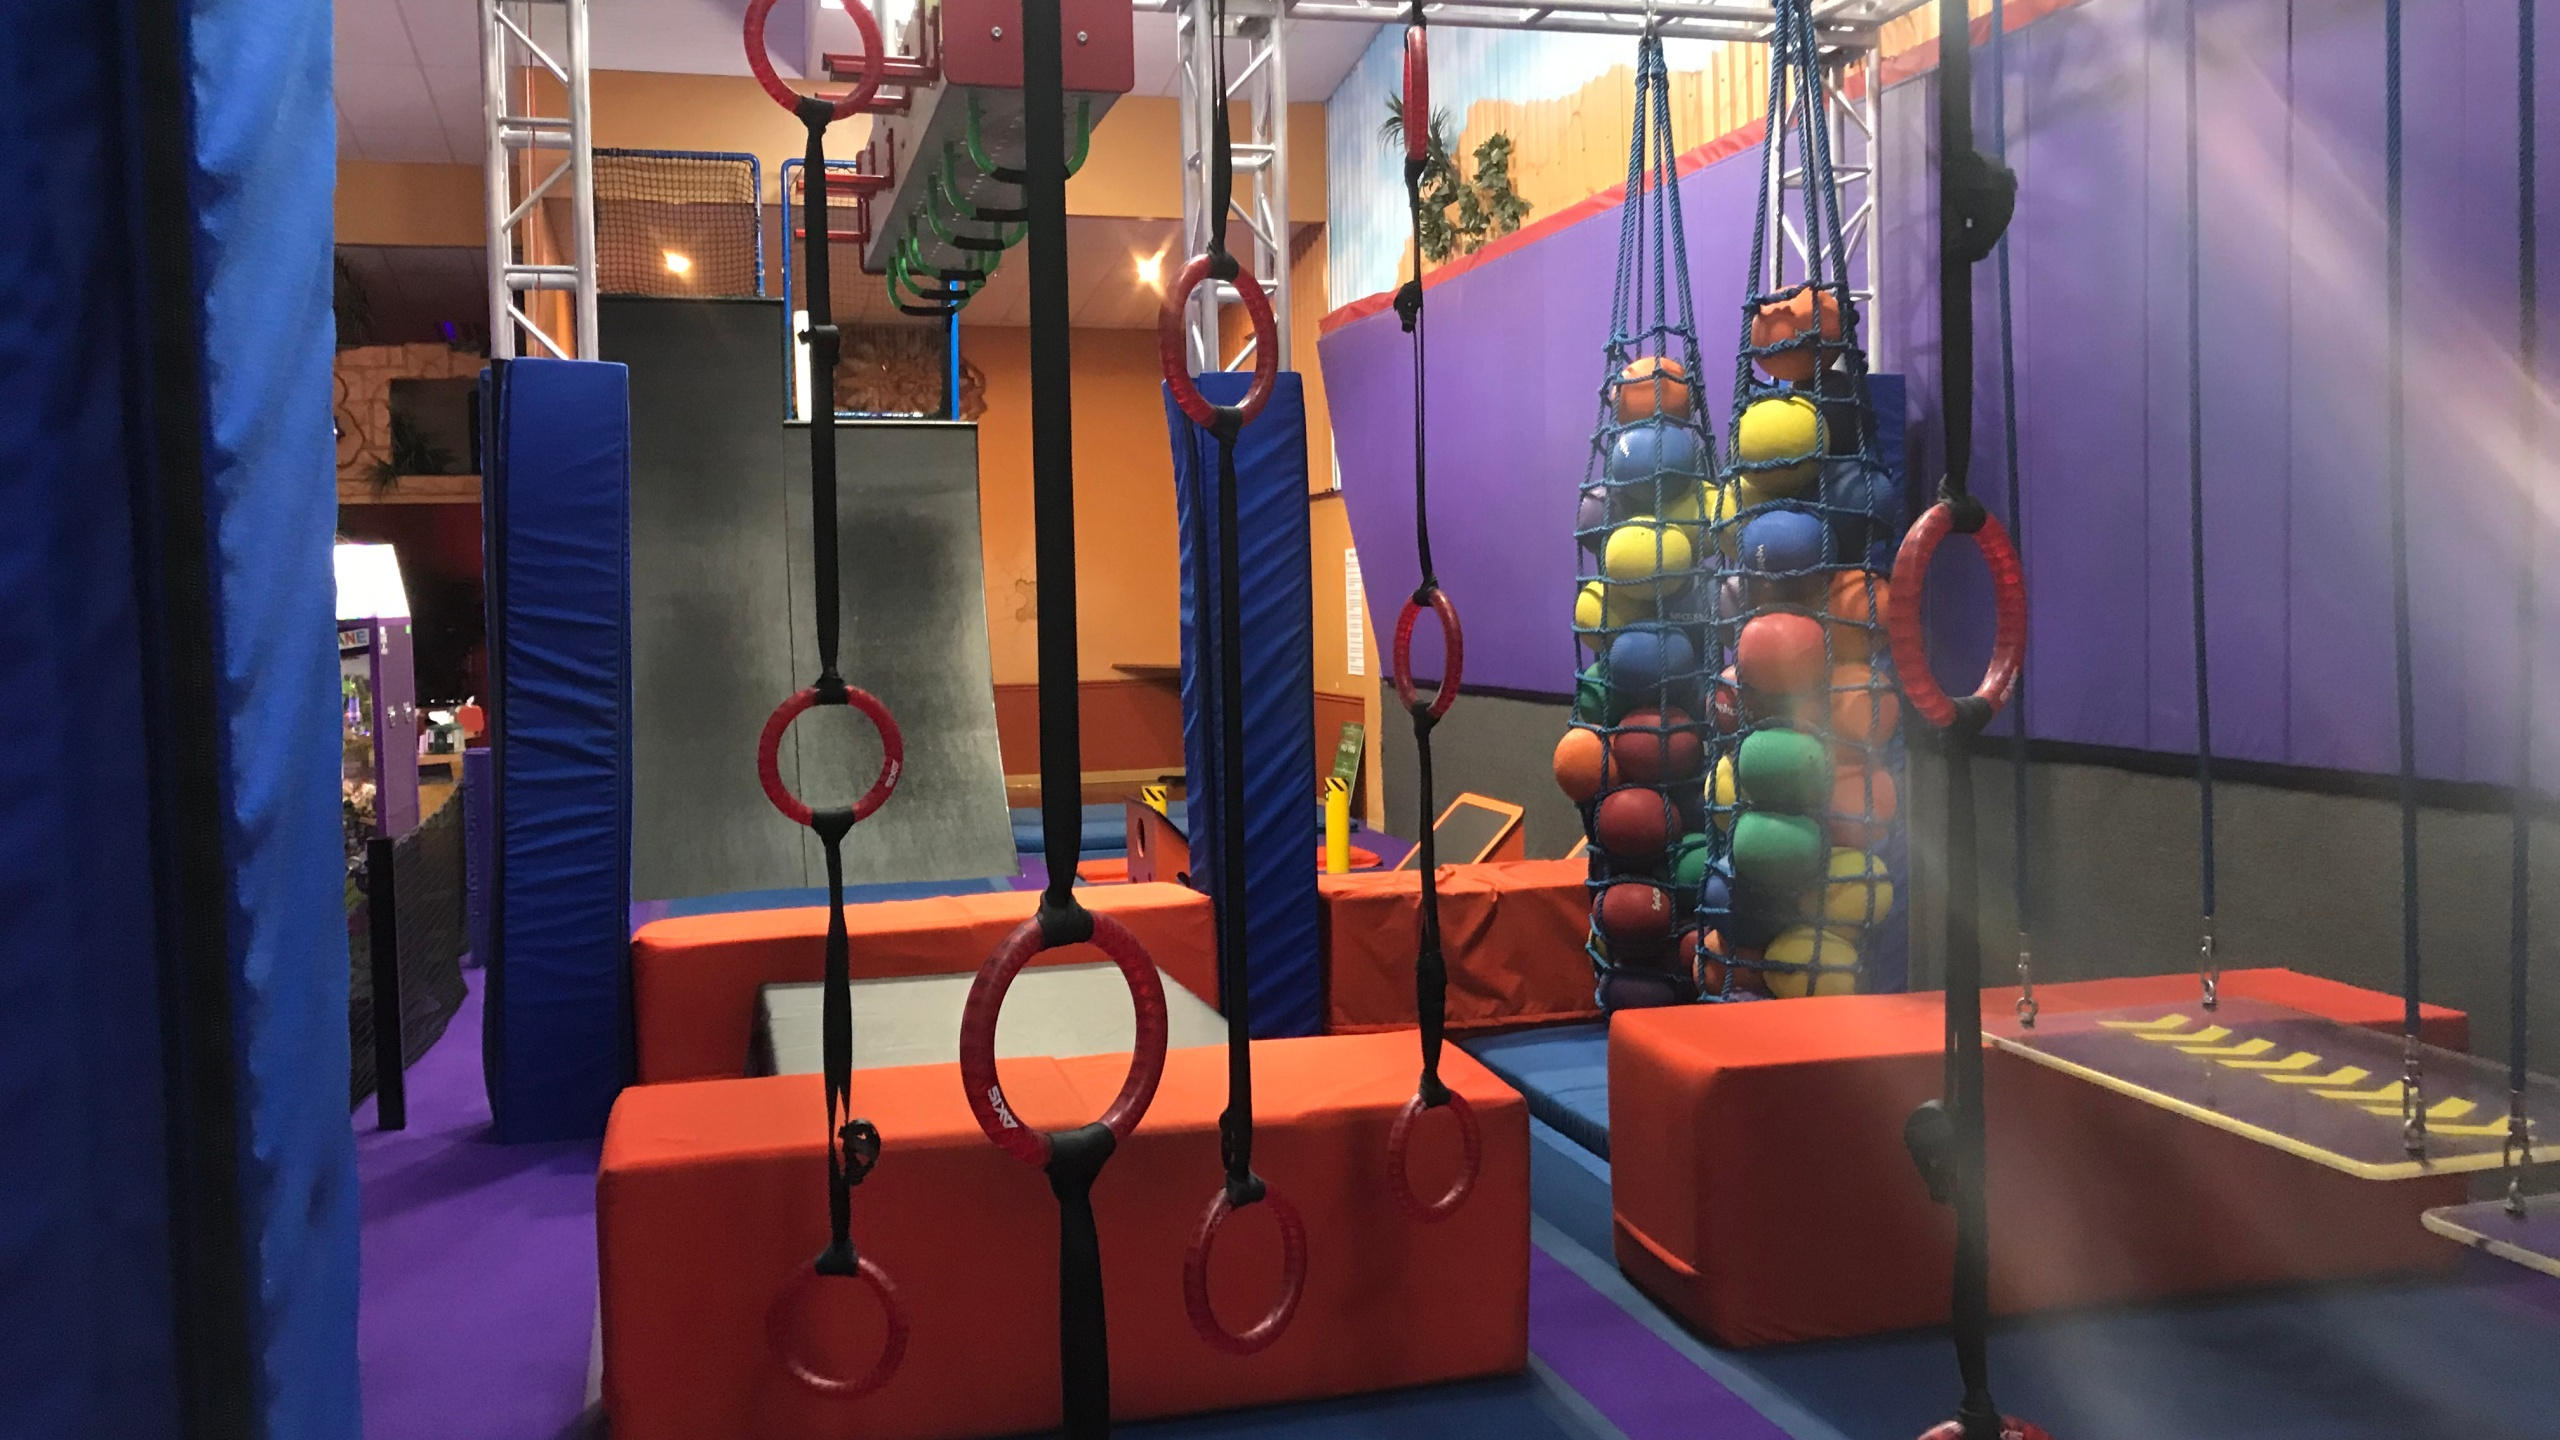 Xtreme Adventures Ninja Warrior course in Lutz